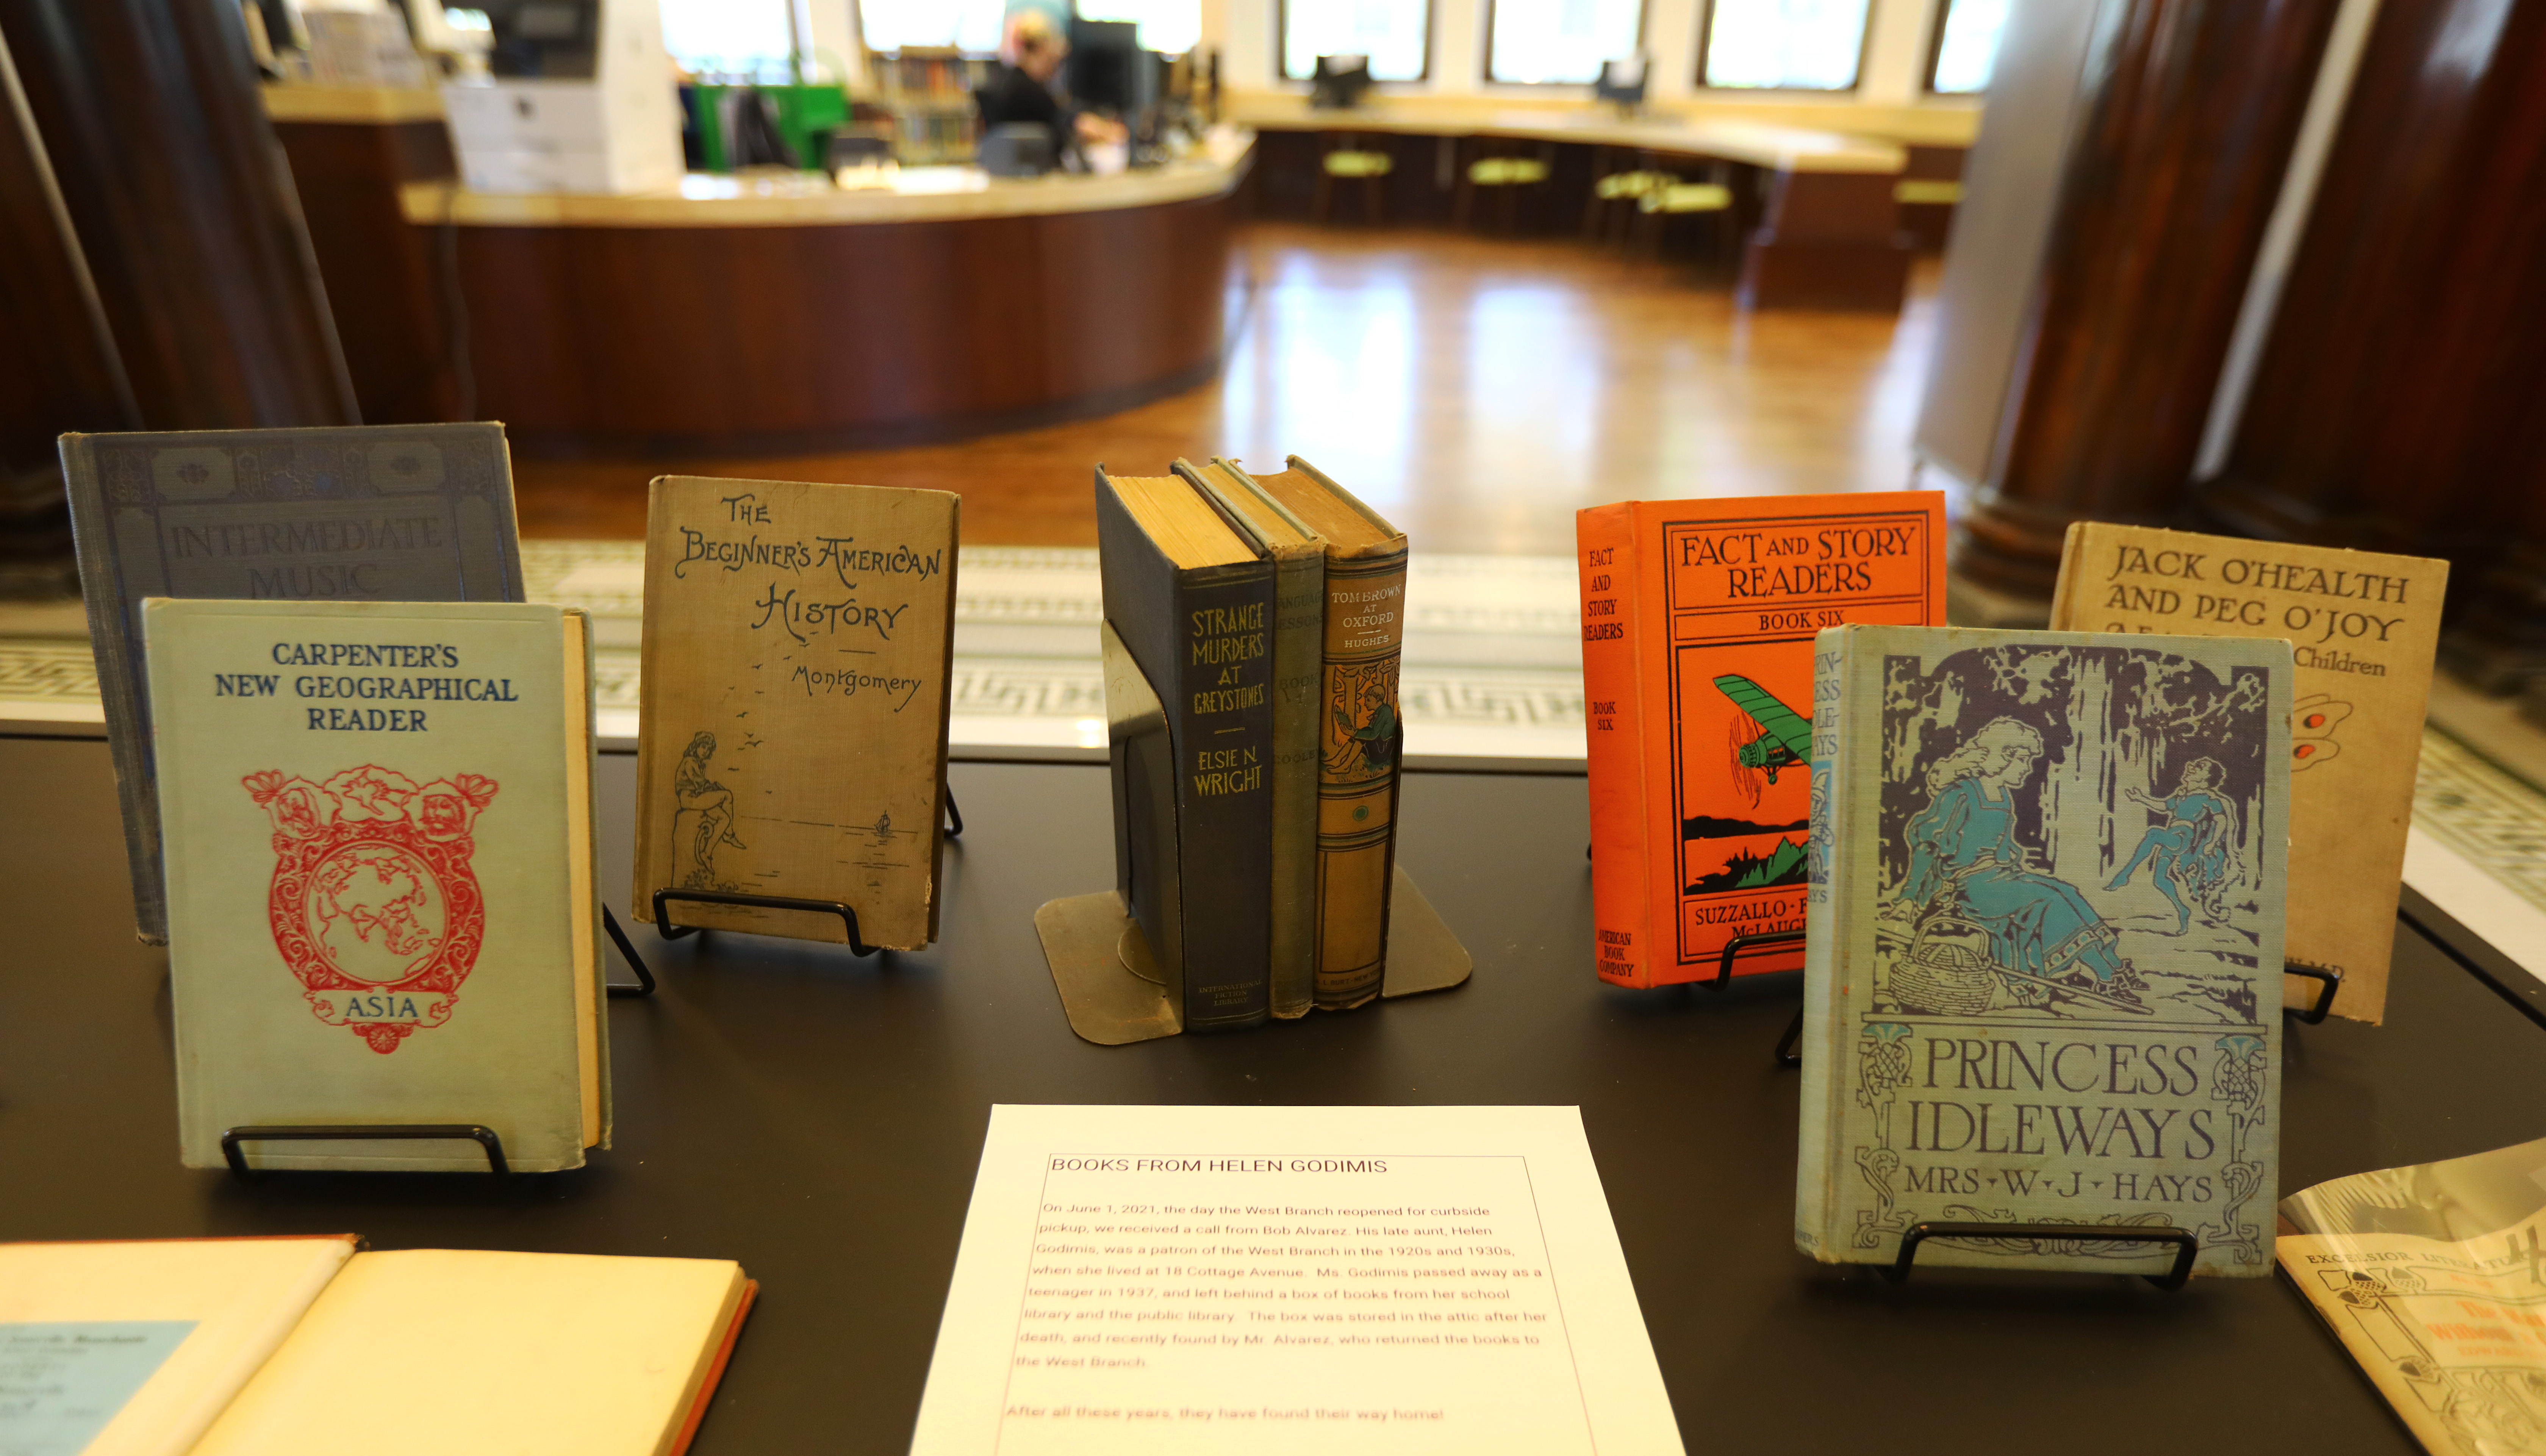 Some of the books are now on display in the West Branch of the Somerville Public Library.